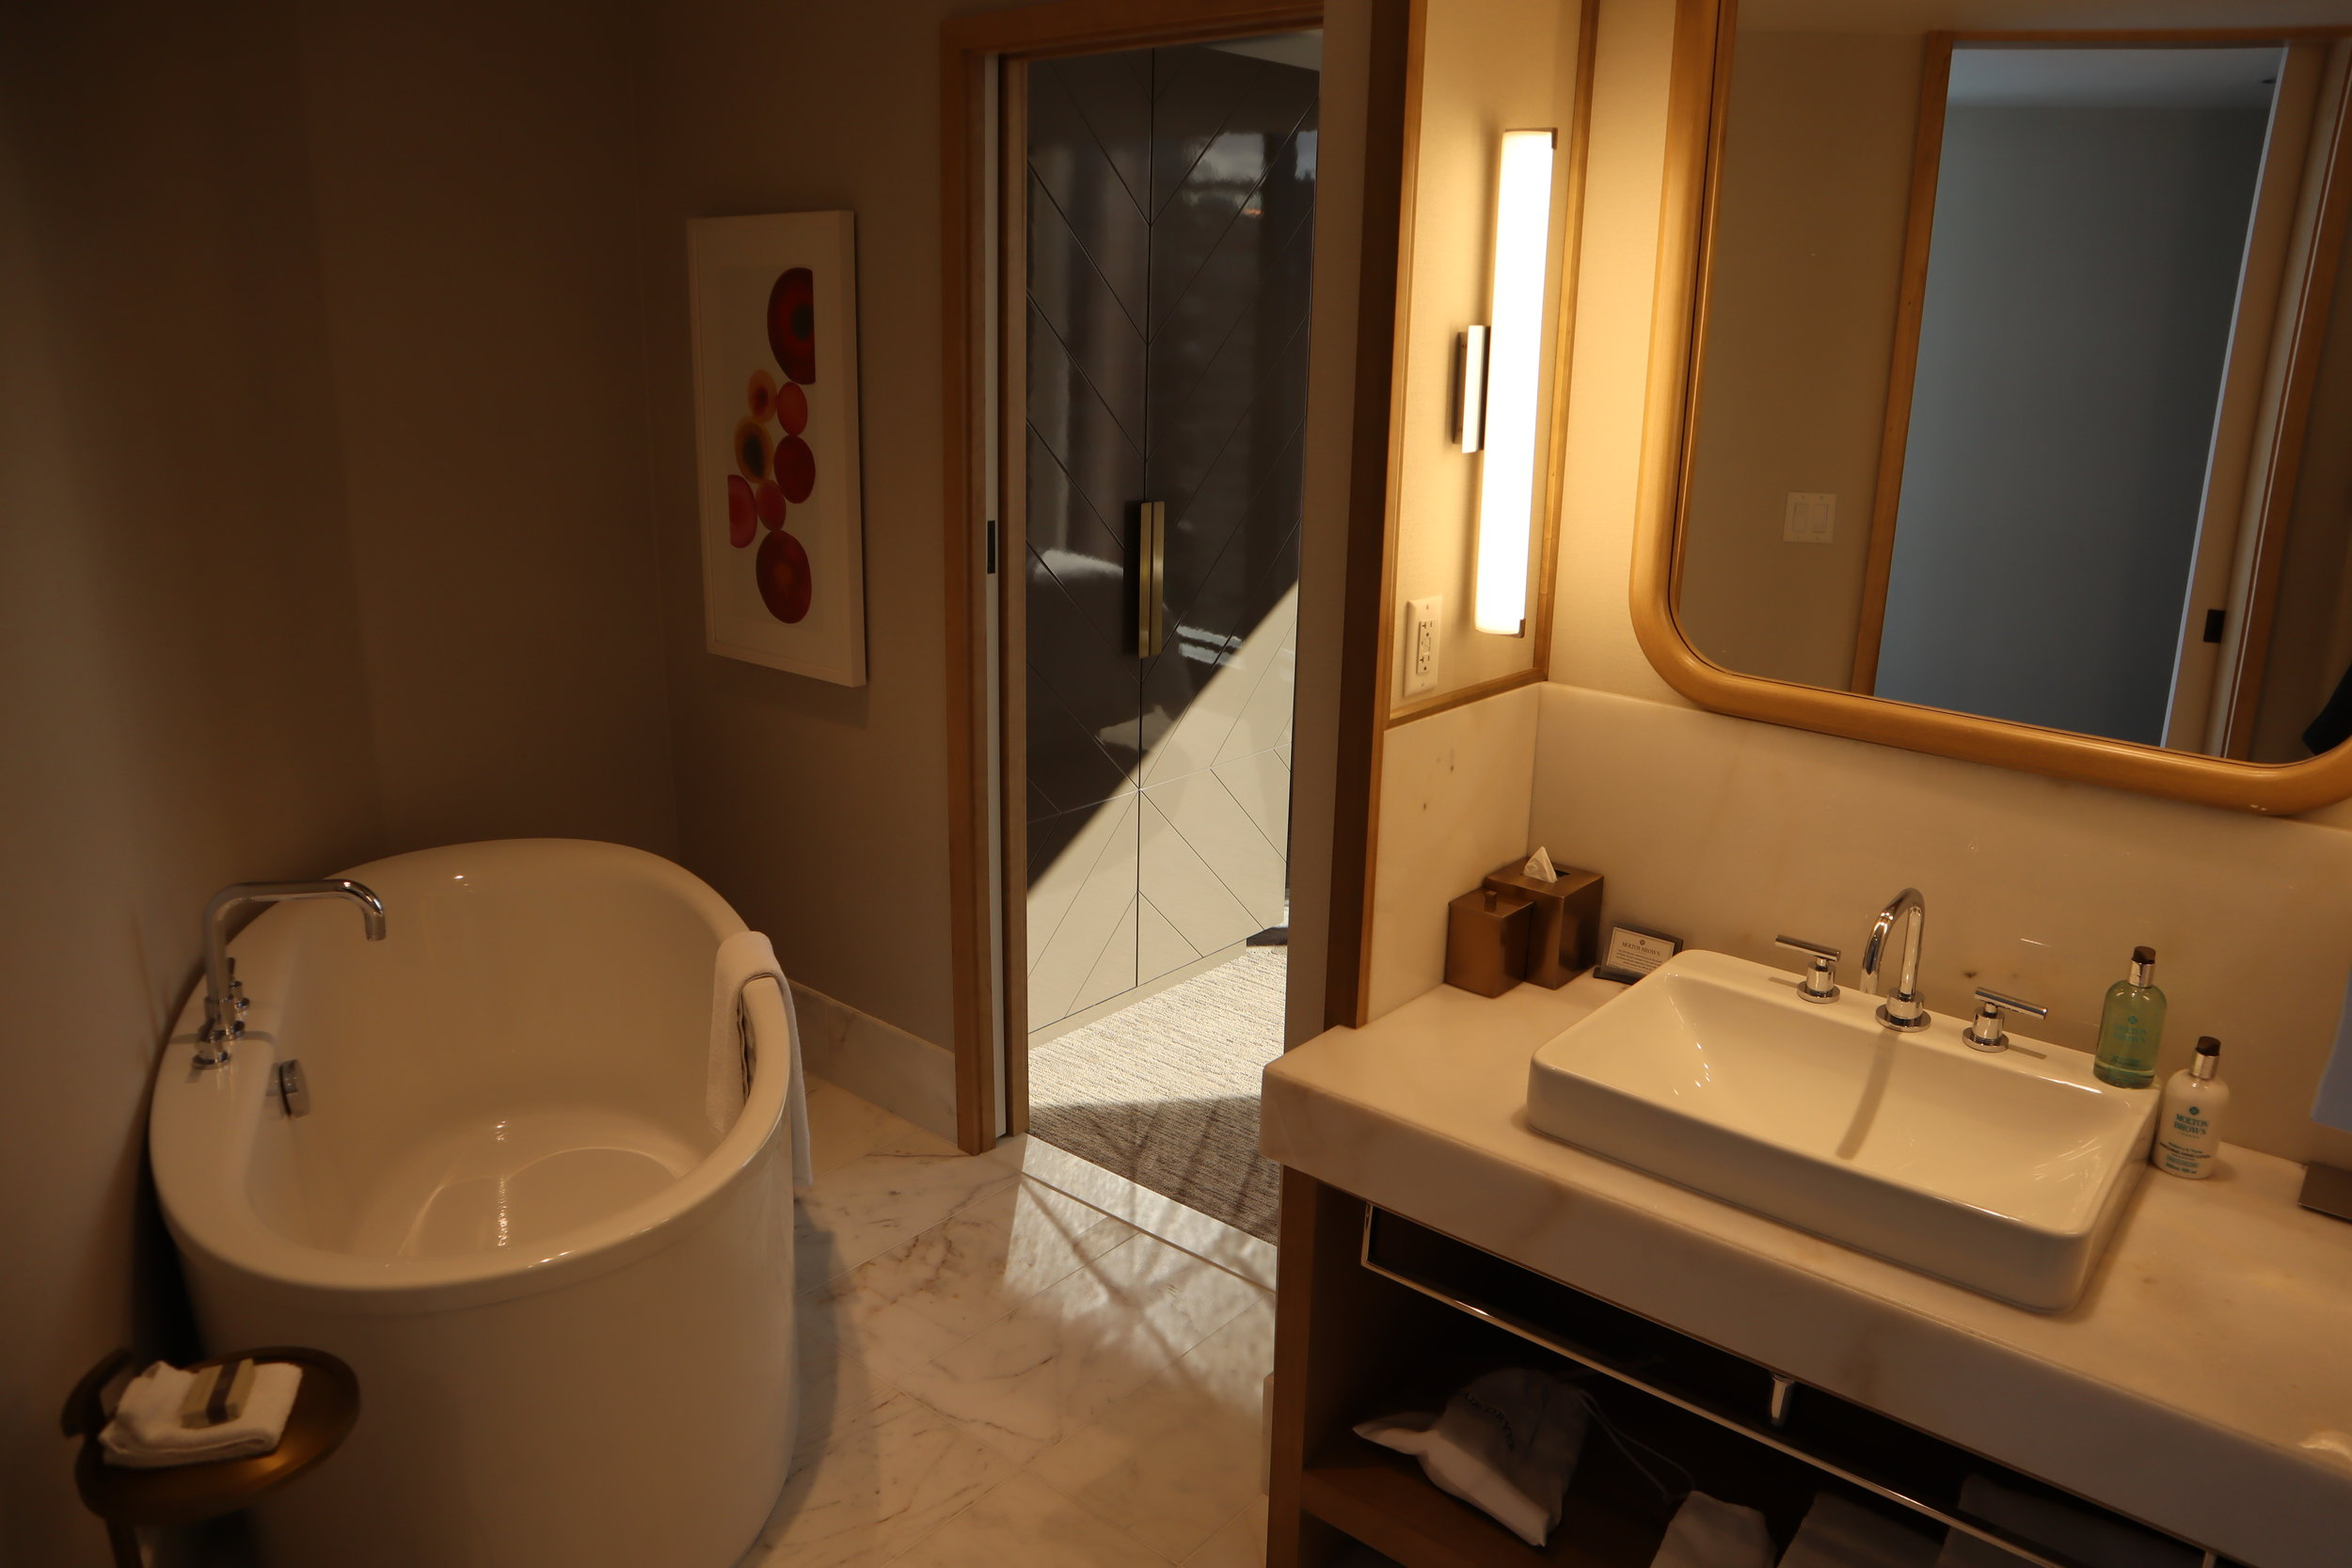 JW Marriott Parq Vancouver – One-bedroom suite bathroom